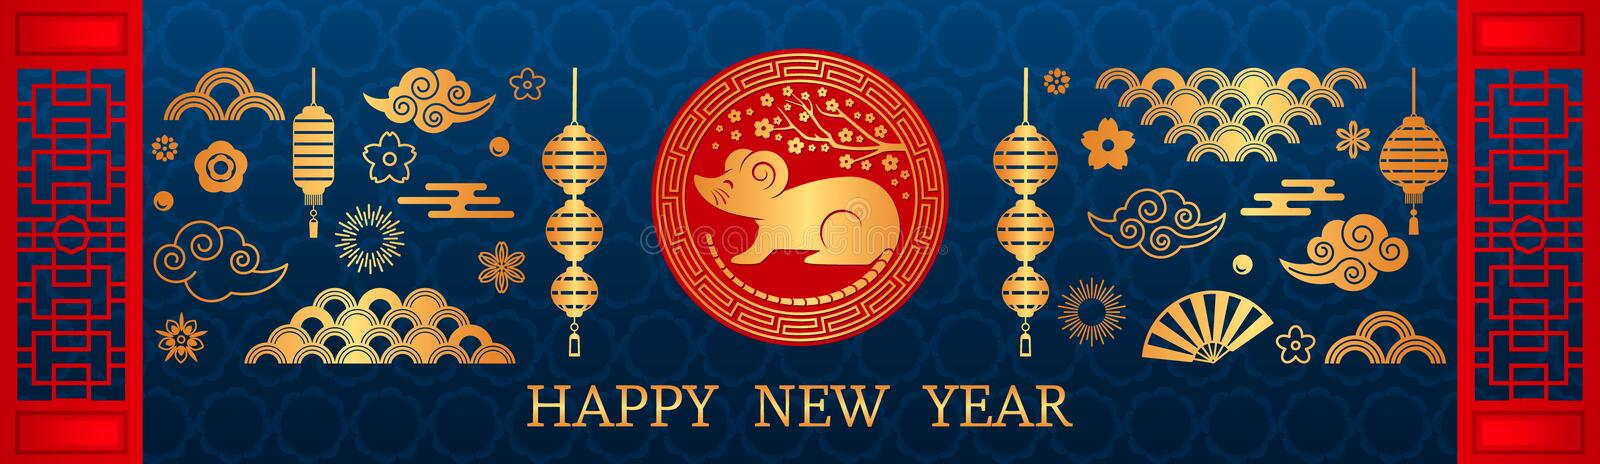 Happy Chinese New Year. The white rat is the symbol of 2020 Chinese year of the new year. vector illustration royalty free illustration